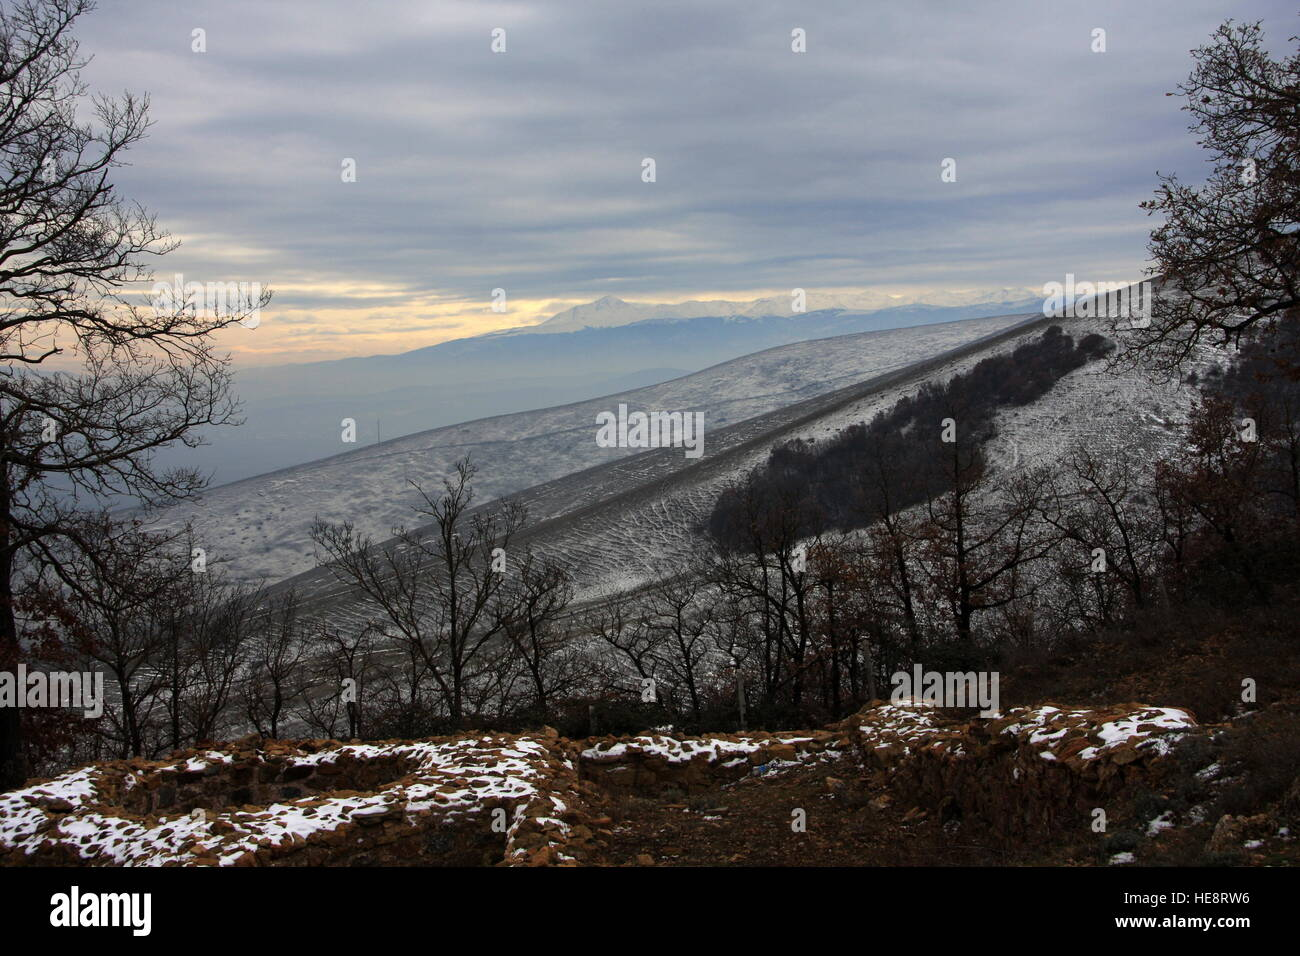 Mountains in Kosovo - Stock Image